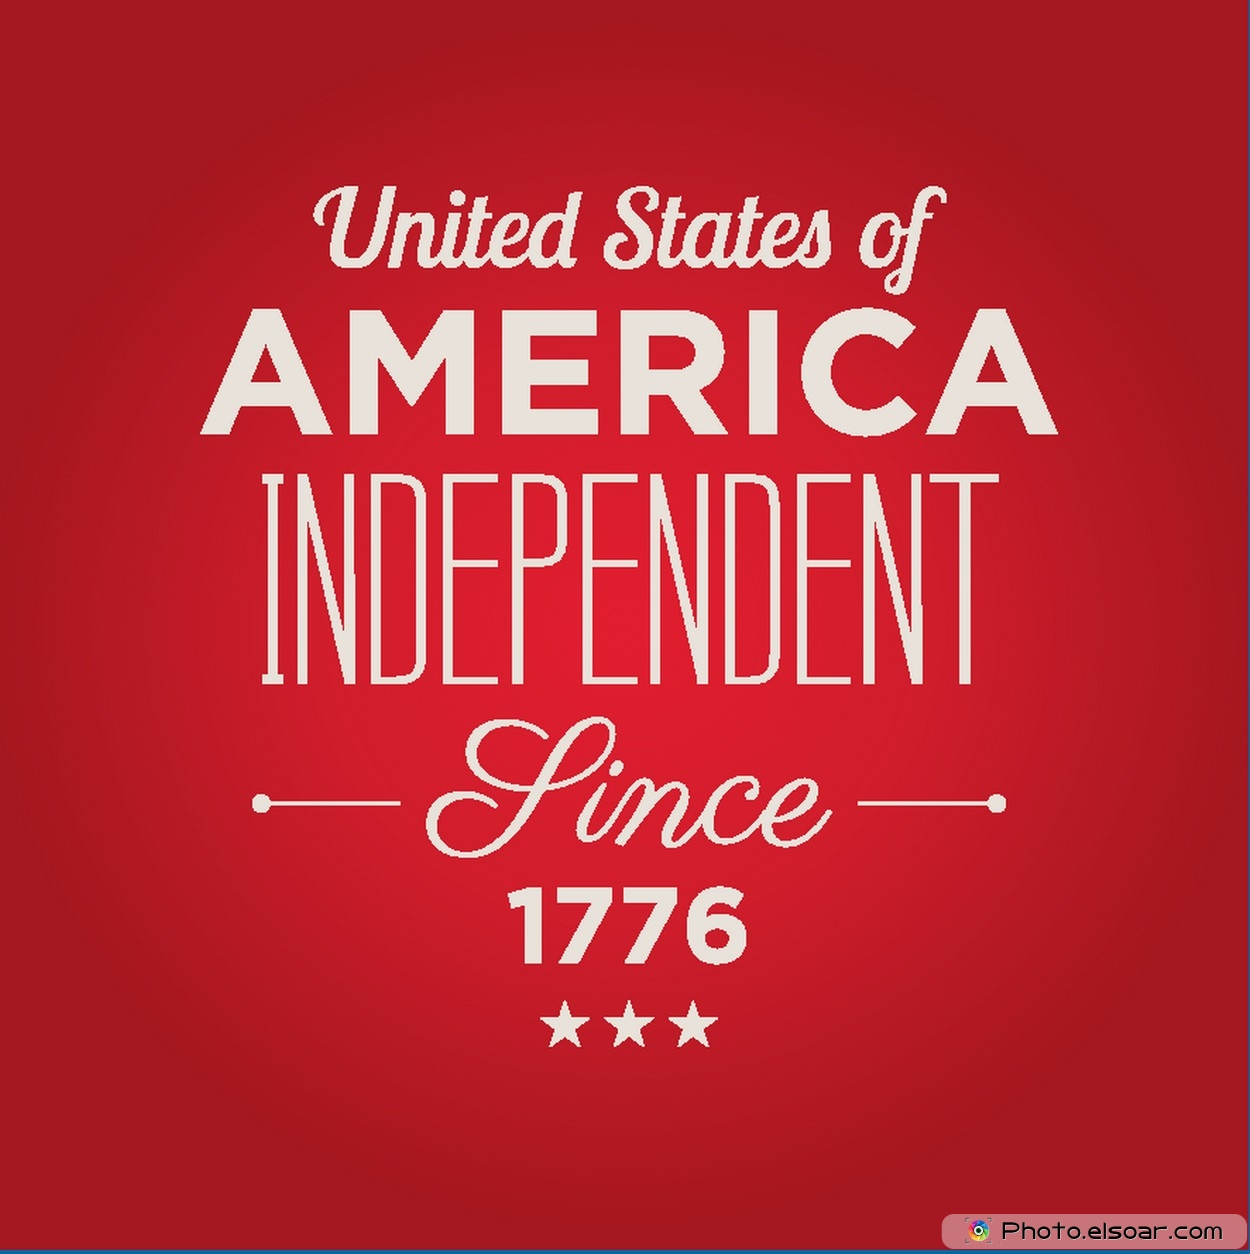 USA Independence Day Since 1776 Free Card